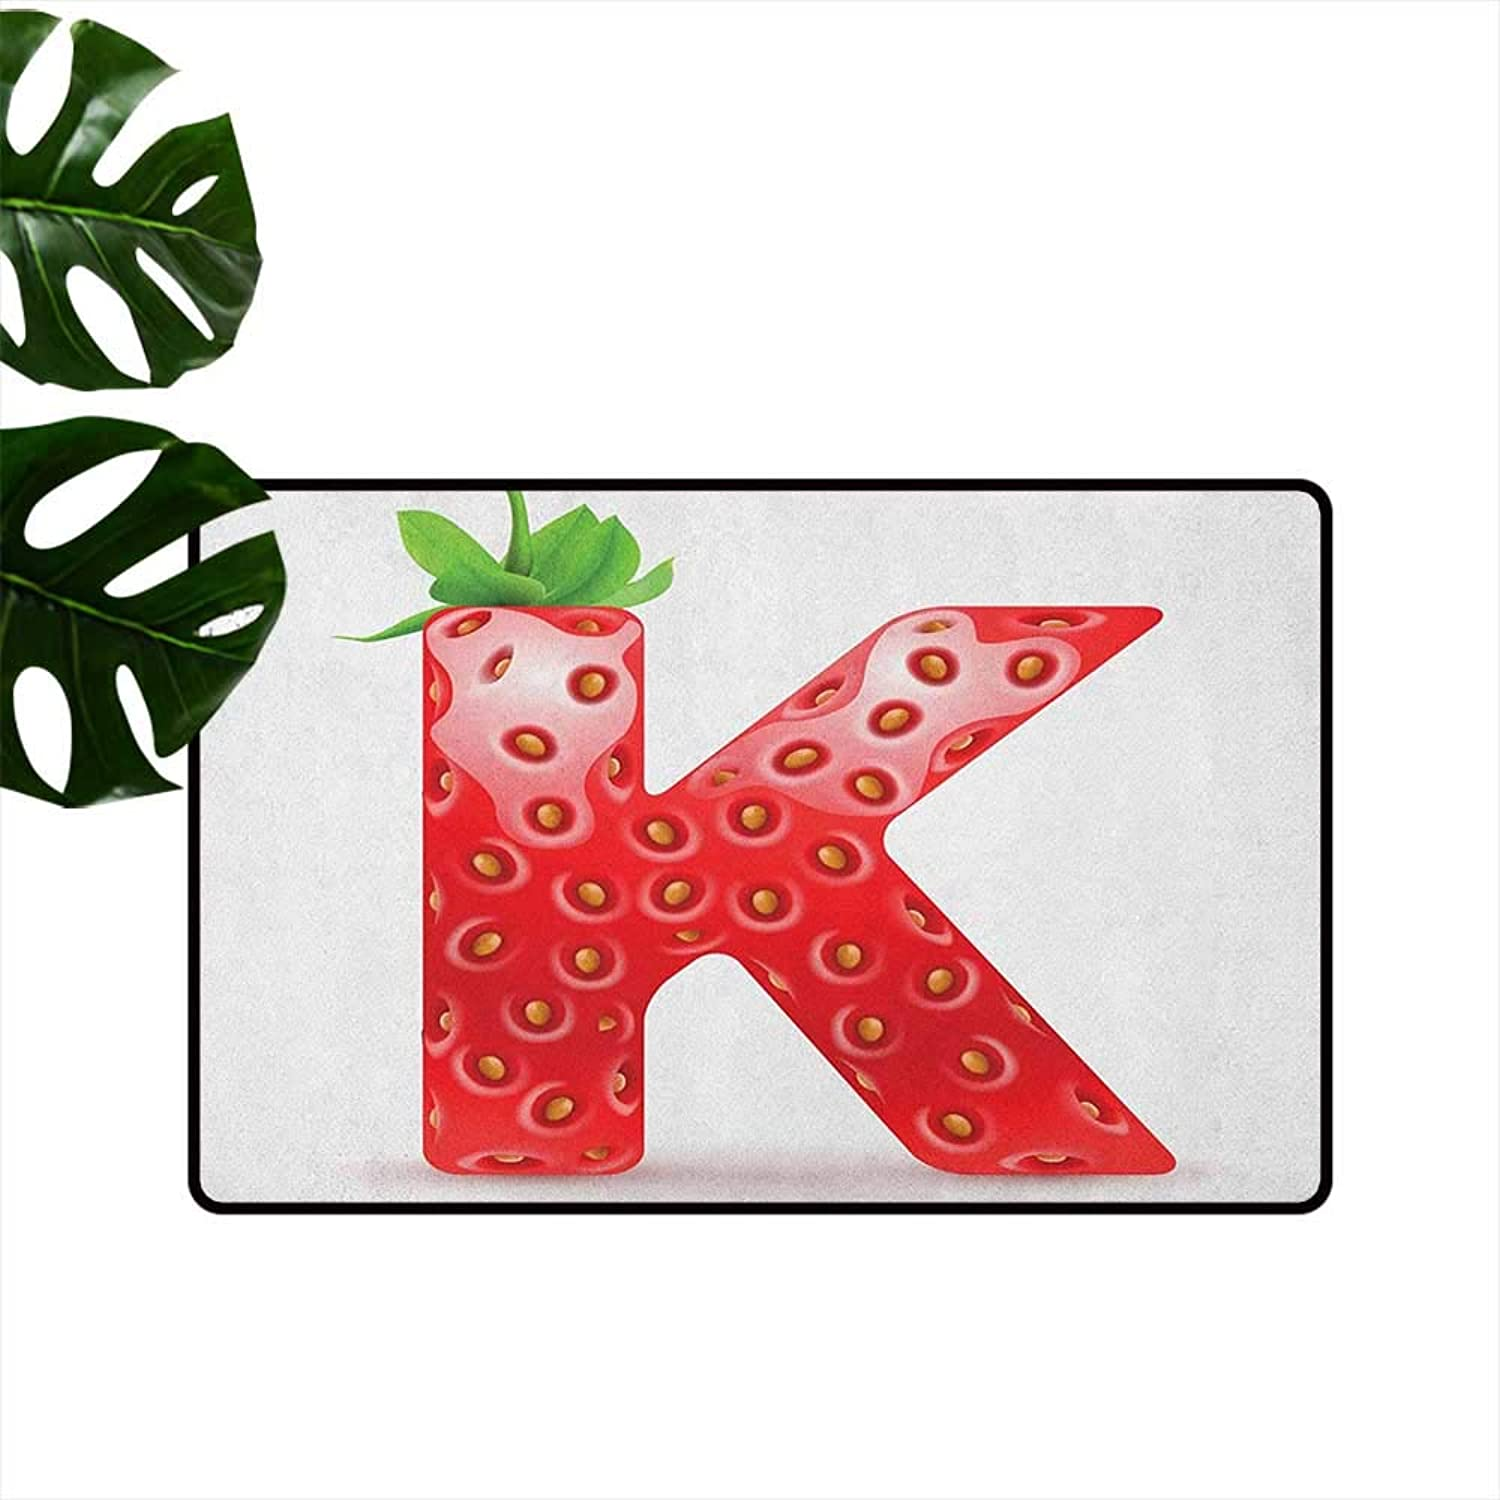 Letter K Large Outdoor Indoor Rubber Doormat Fresh Food Strawberry Style Capital K Seasonal Refreshment Design Personality W35 x L59 Vermilion Green orange